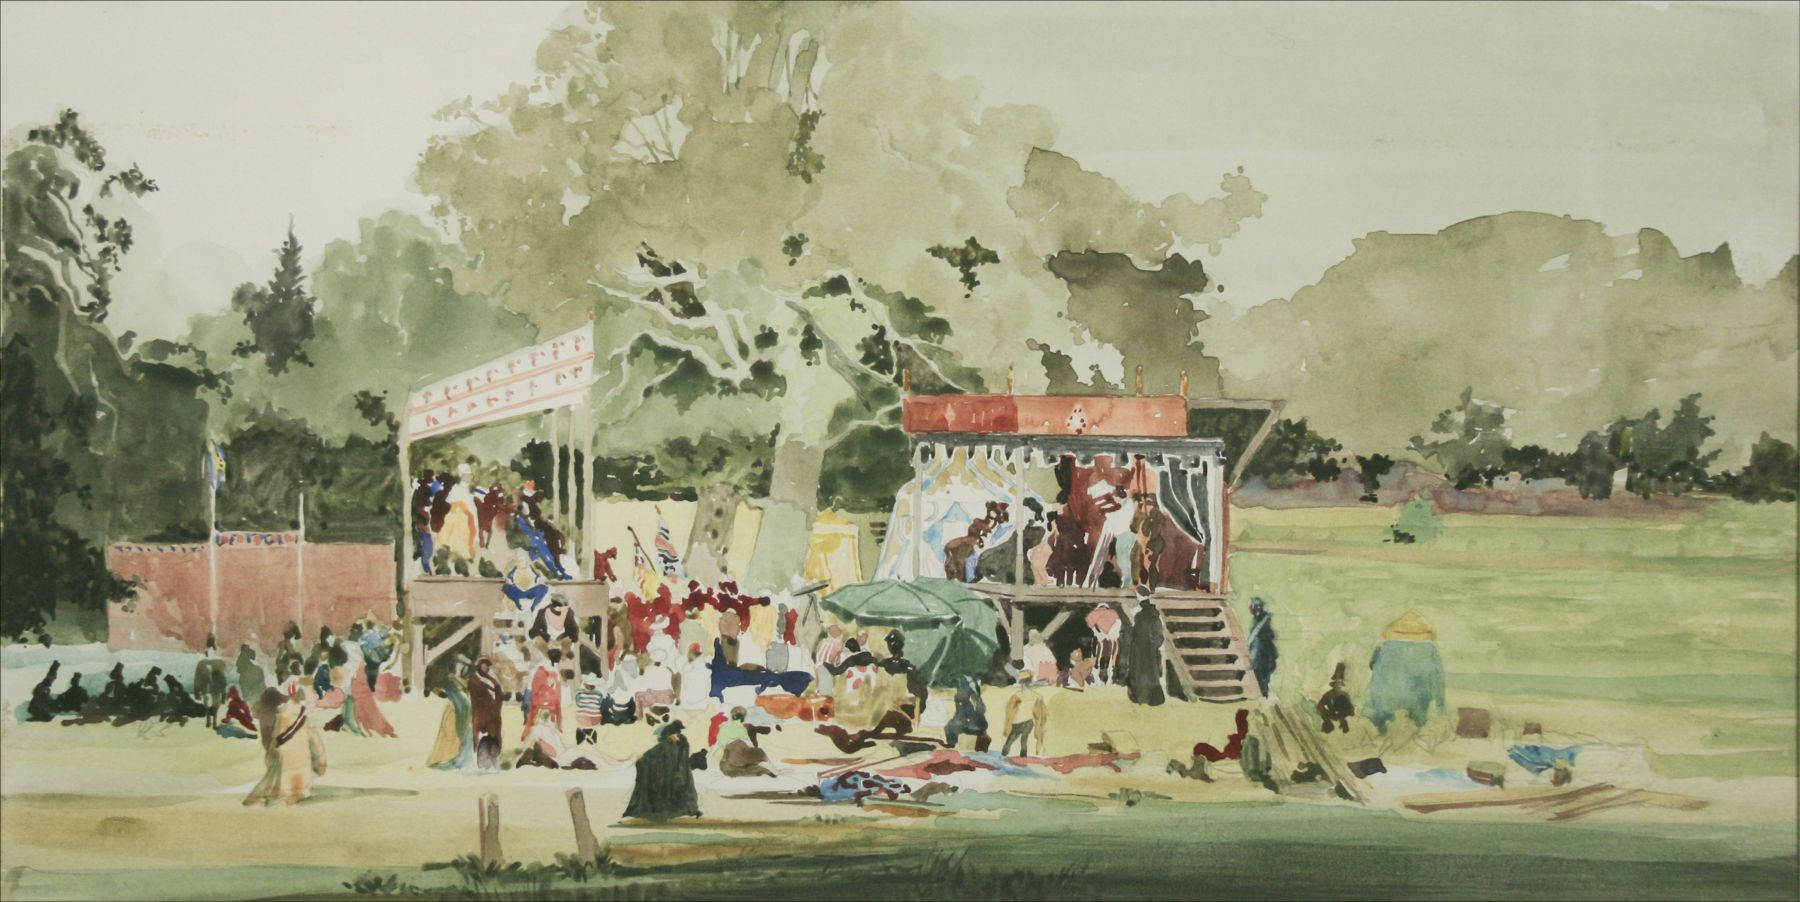 """David Levine, Taping """"As You Like It"""", c. 1979, watercolor on paper, 9 x 18 inches"""